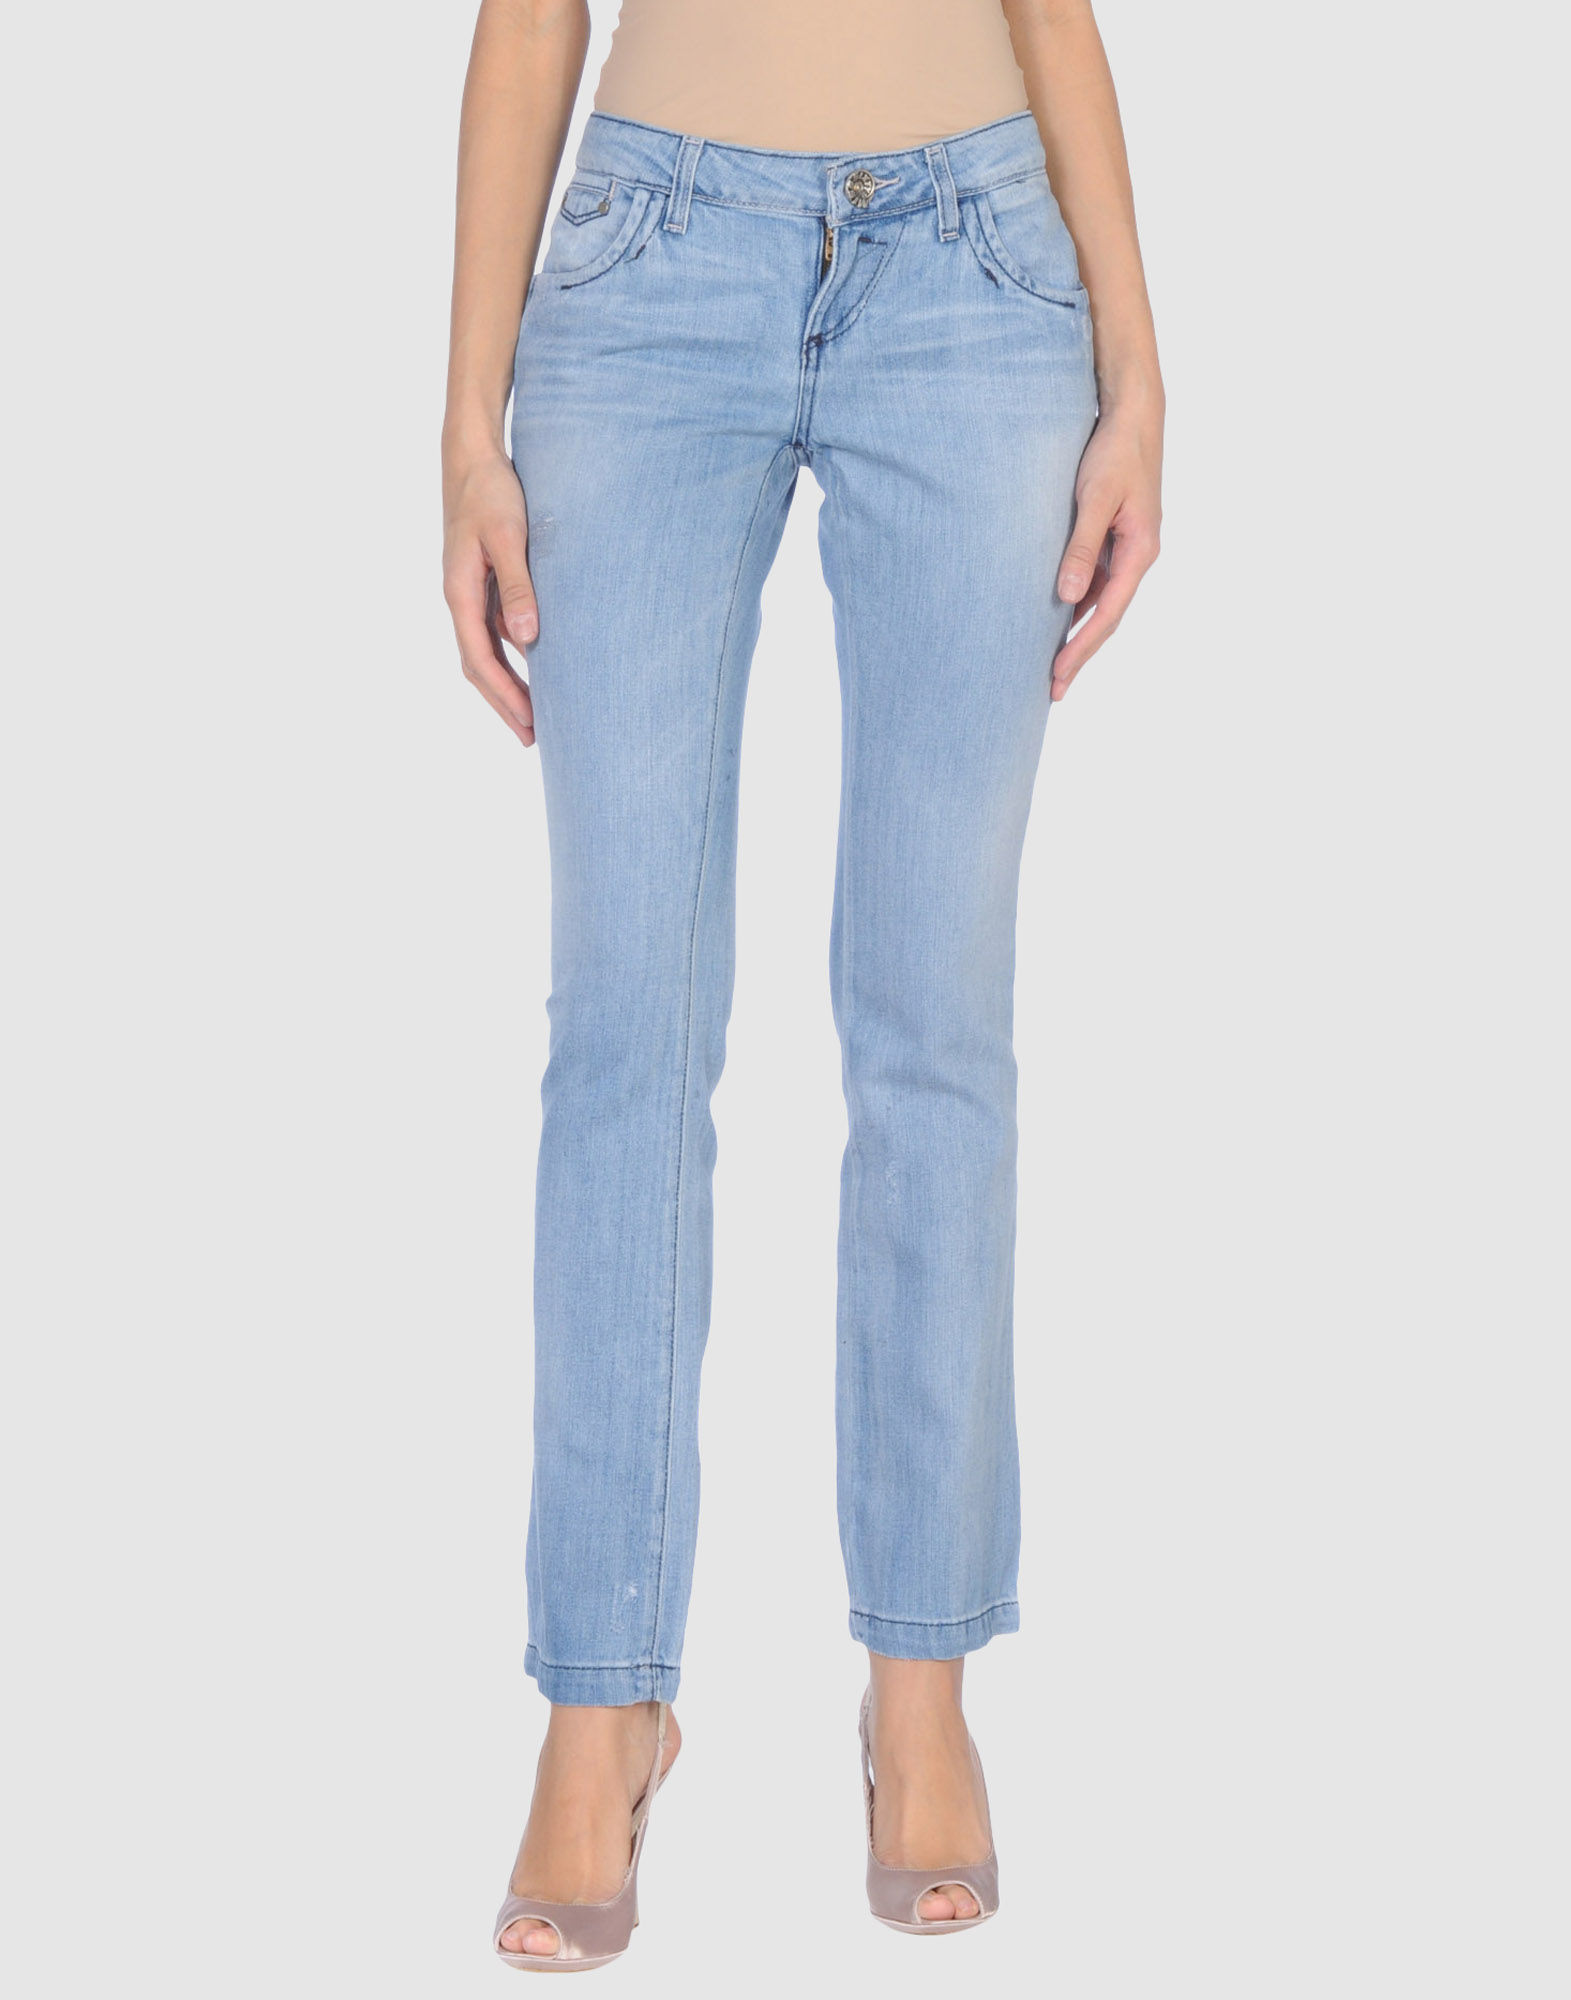 MISS SIXTY Jeans - Item 42183690